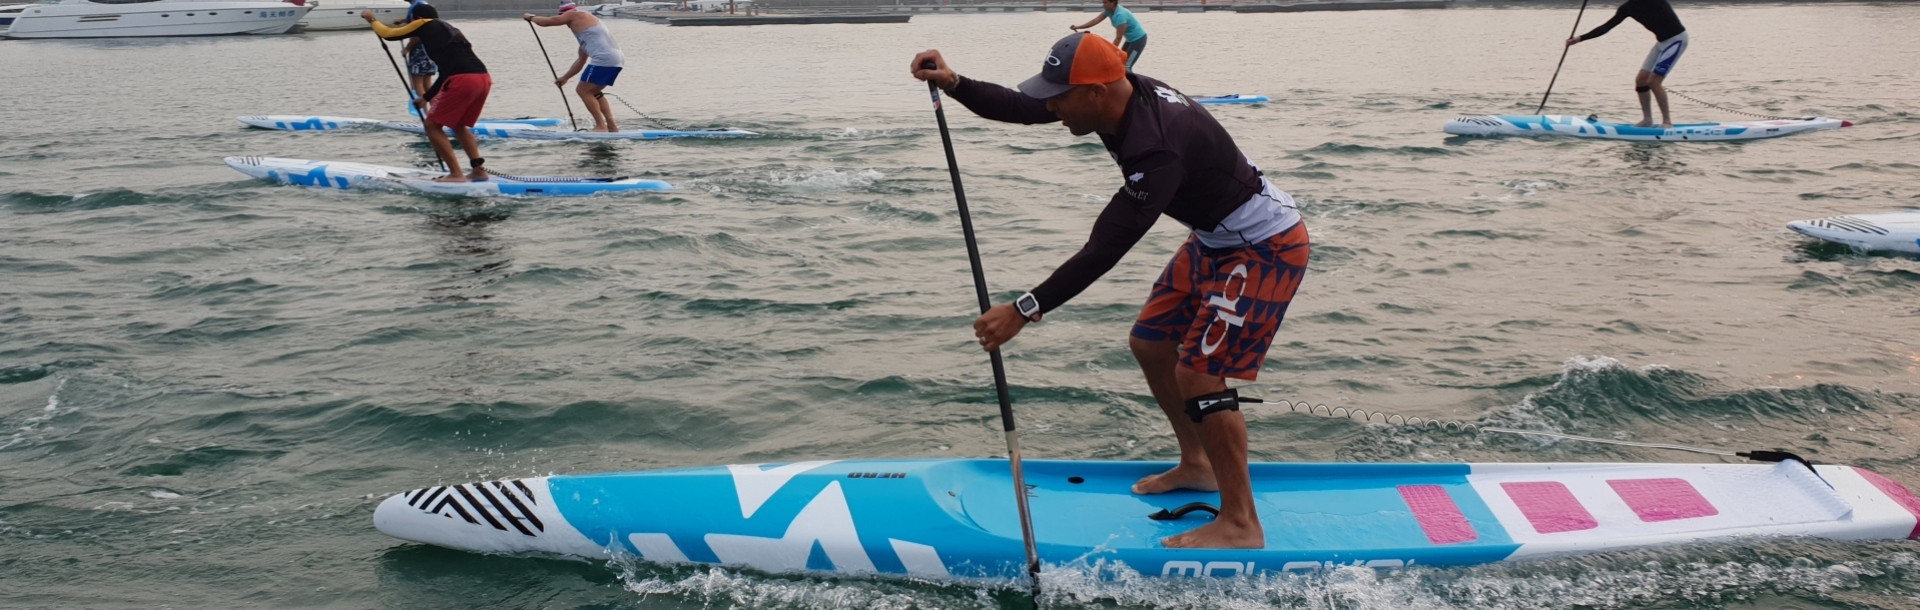 ICF set to stage first World SUP Championships